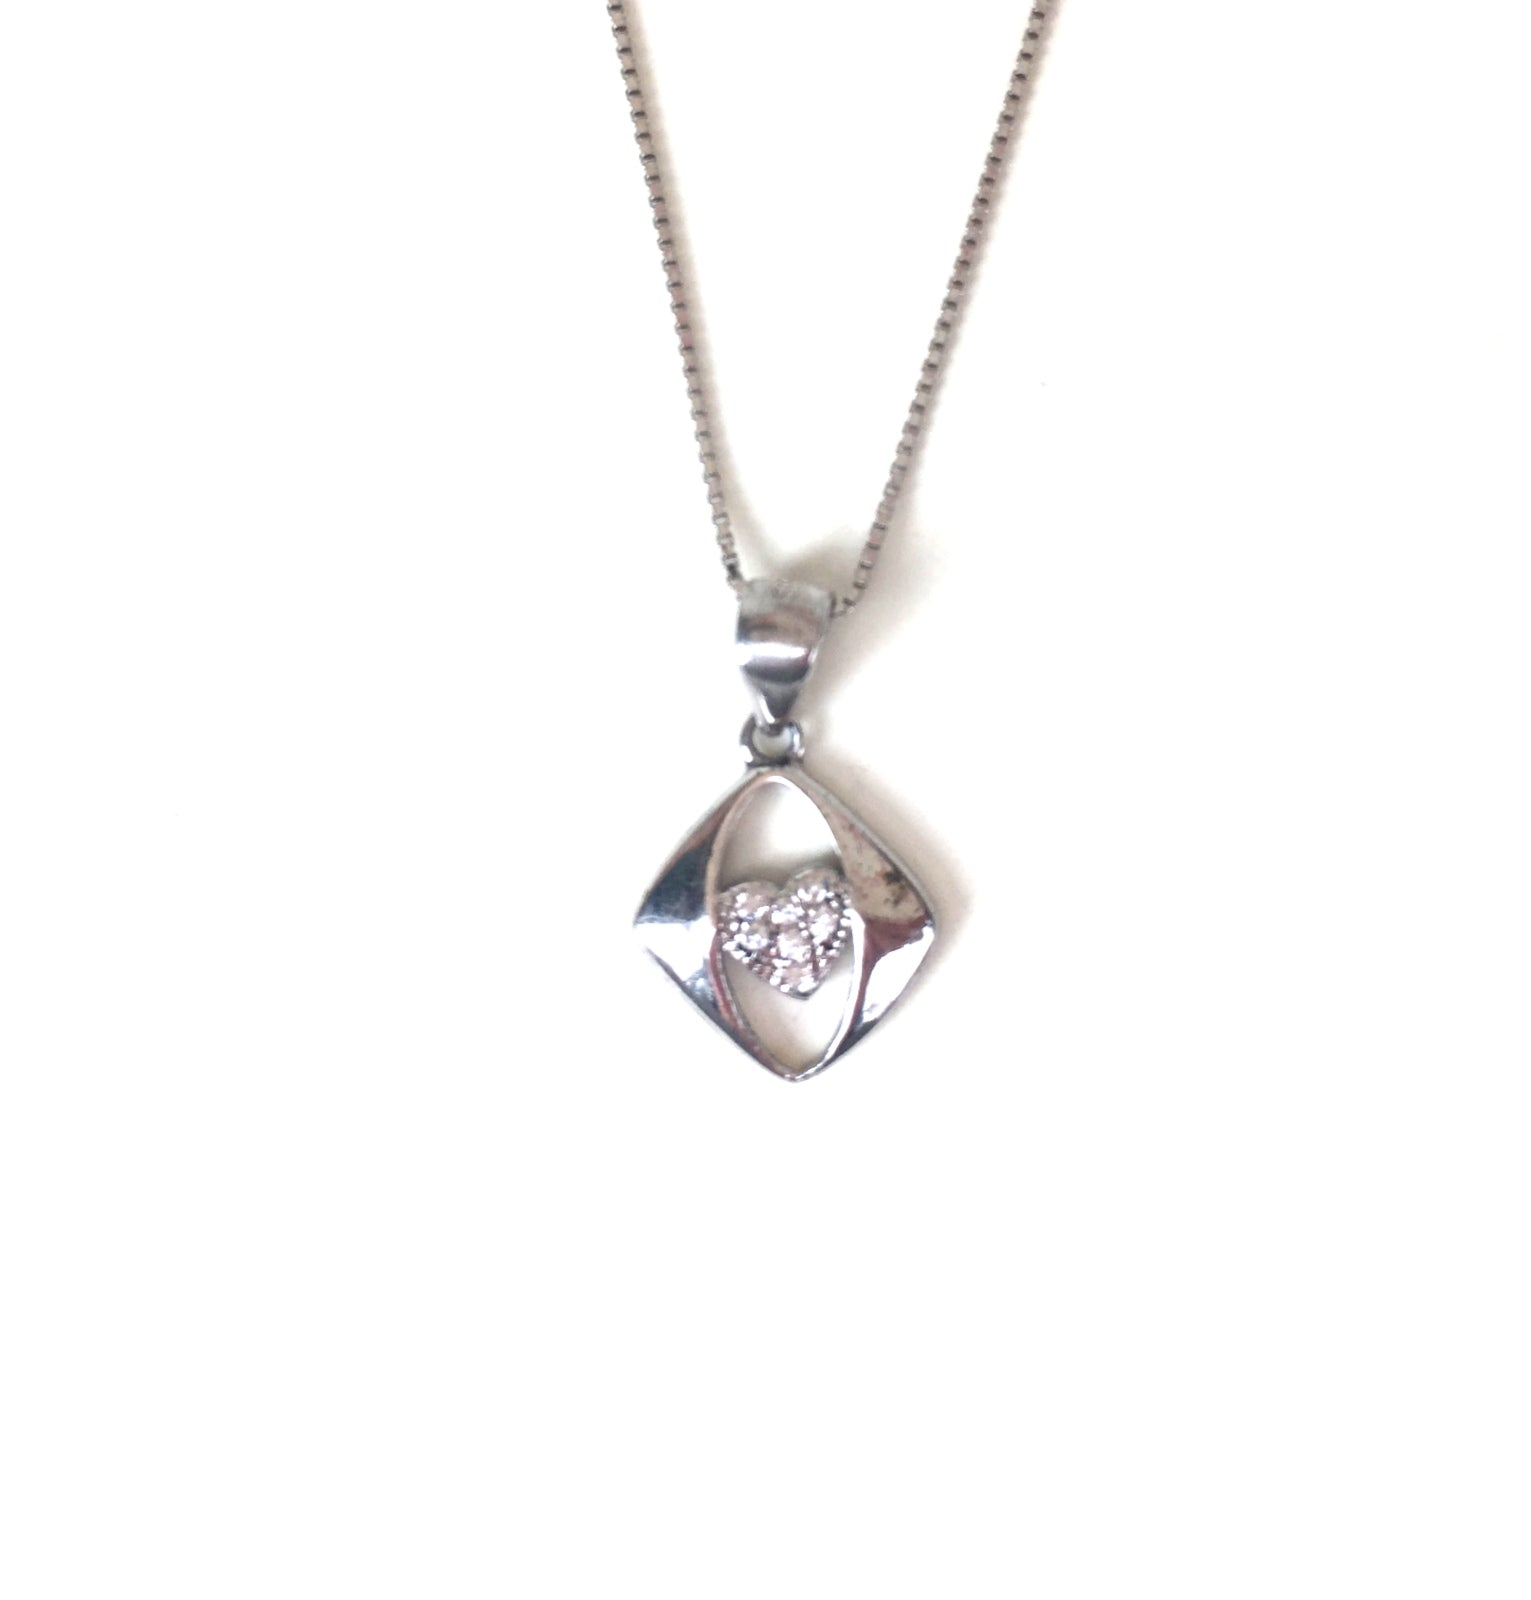 HEART INSIDE PAVE CZ STERLING SILVER NECKLACE